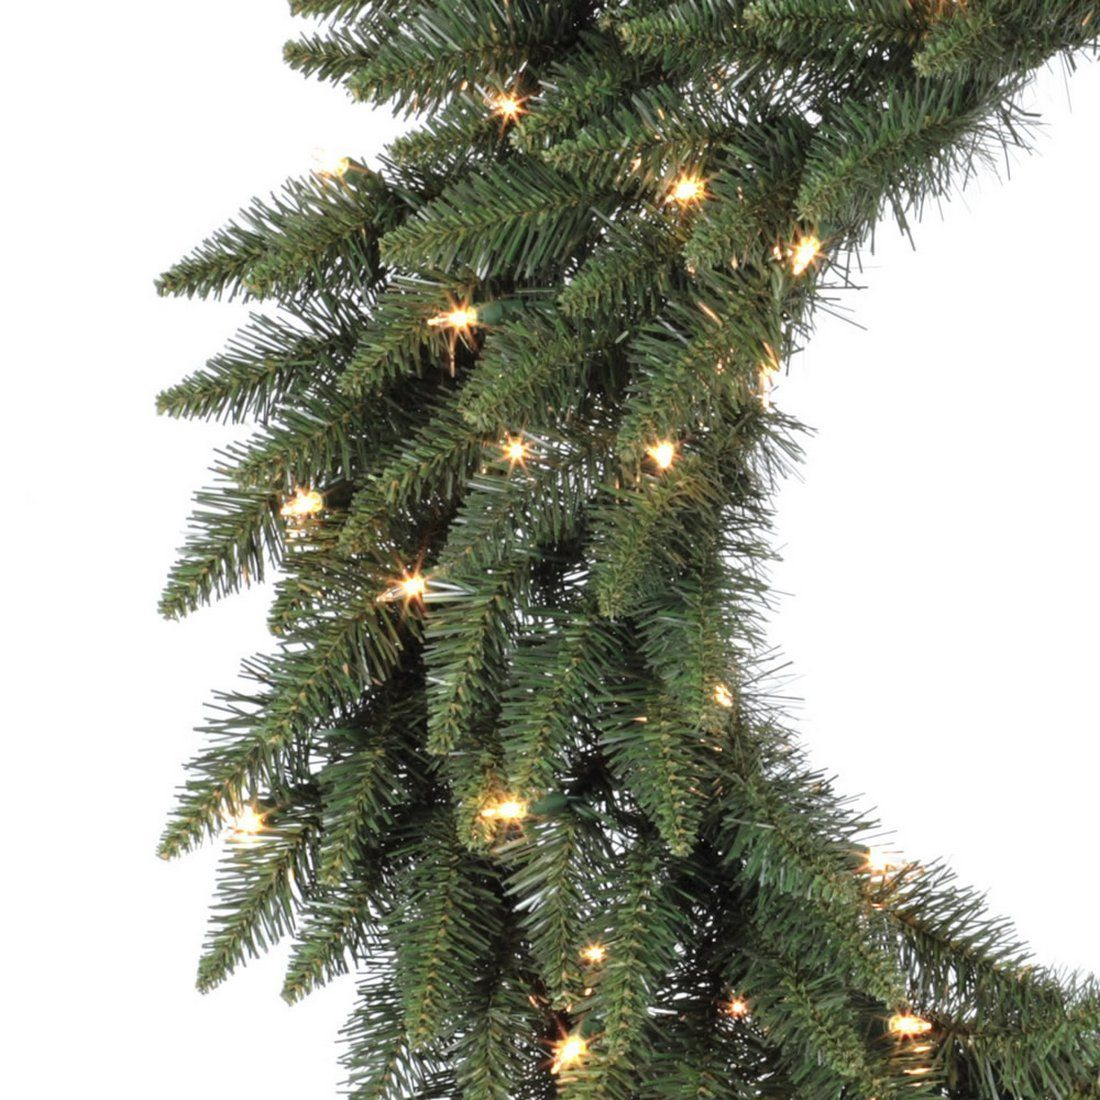 Vickerman 24inch Prelit Camdon Fir Wreath With 130 Tips And 50 Clear Dural Artificial Christmas Wreaths Christmas Wreaths With Lights Pre Lit Christmas Wreaths